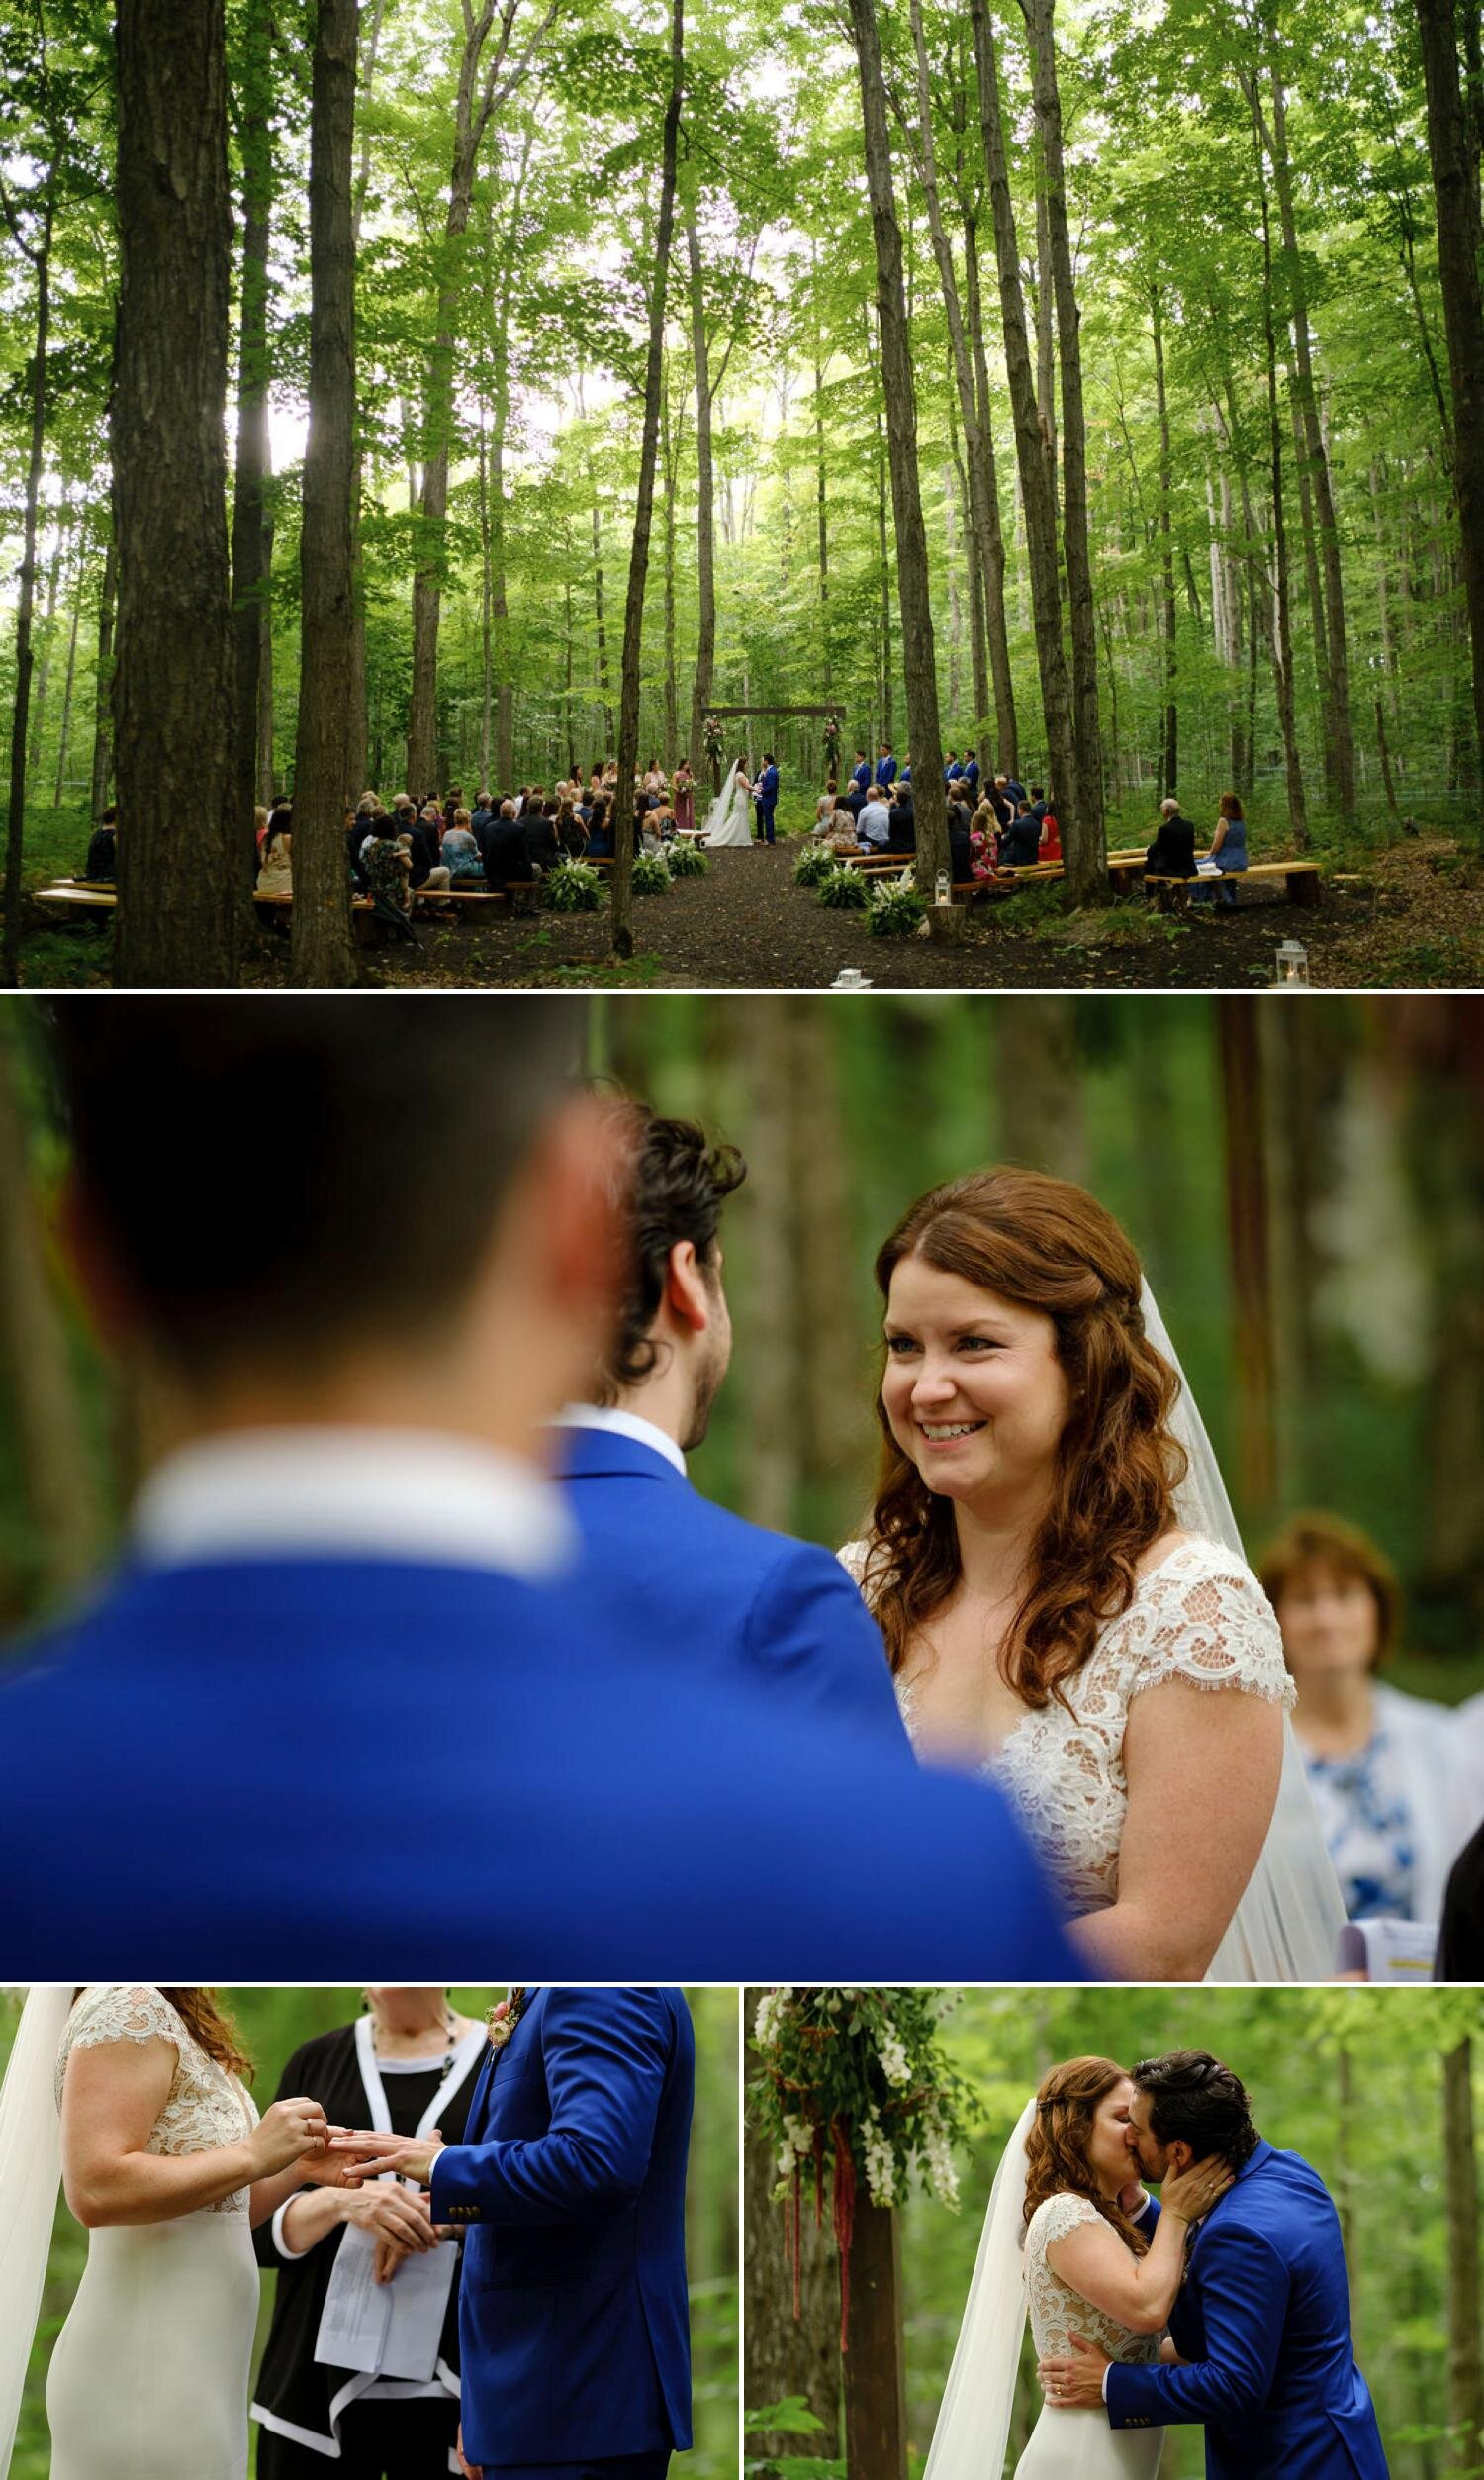 photos of a  ceremony in the woods at temples sugarbush